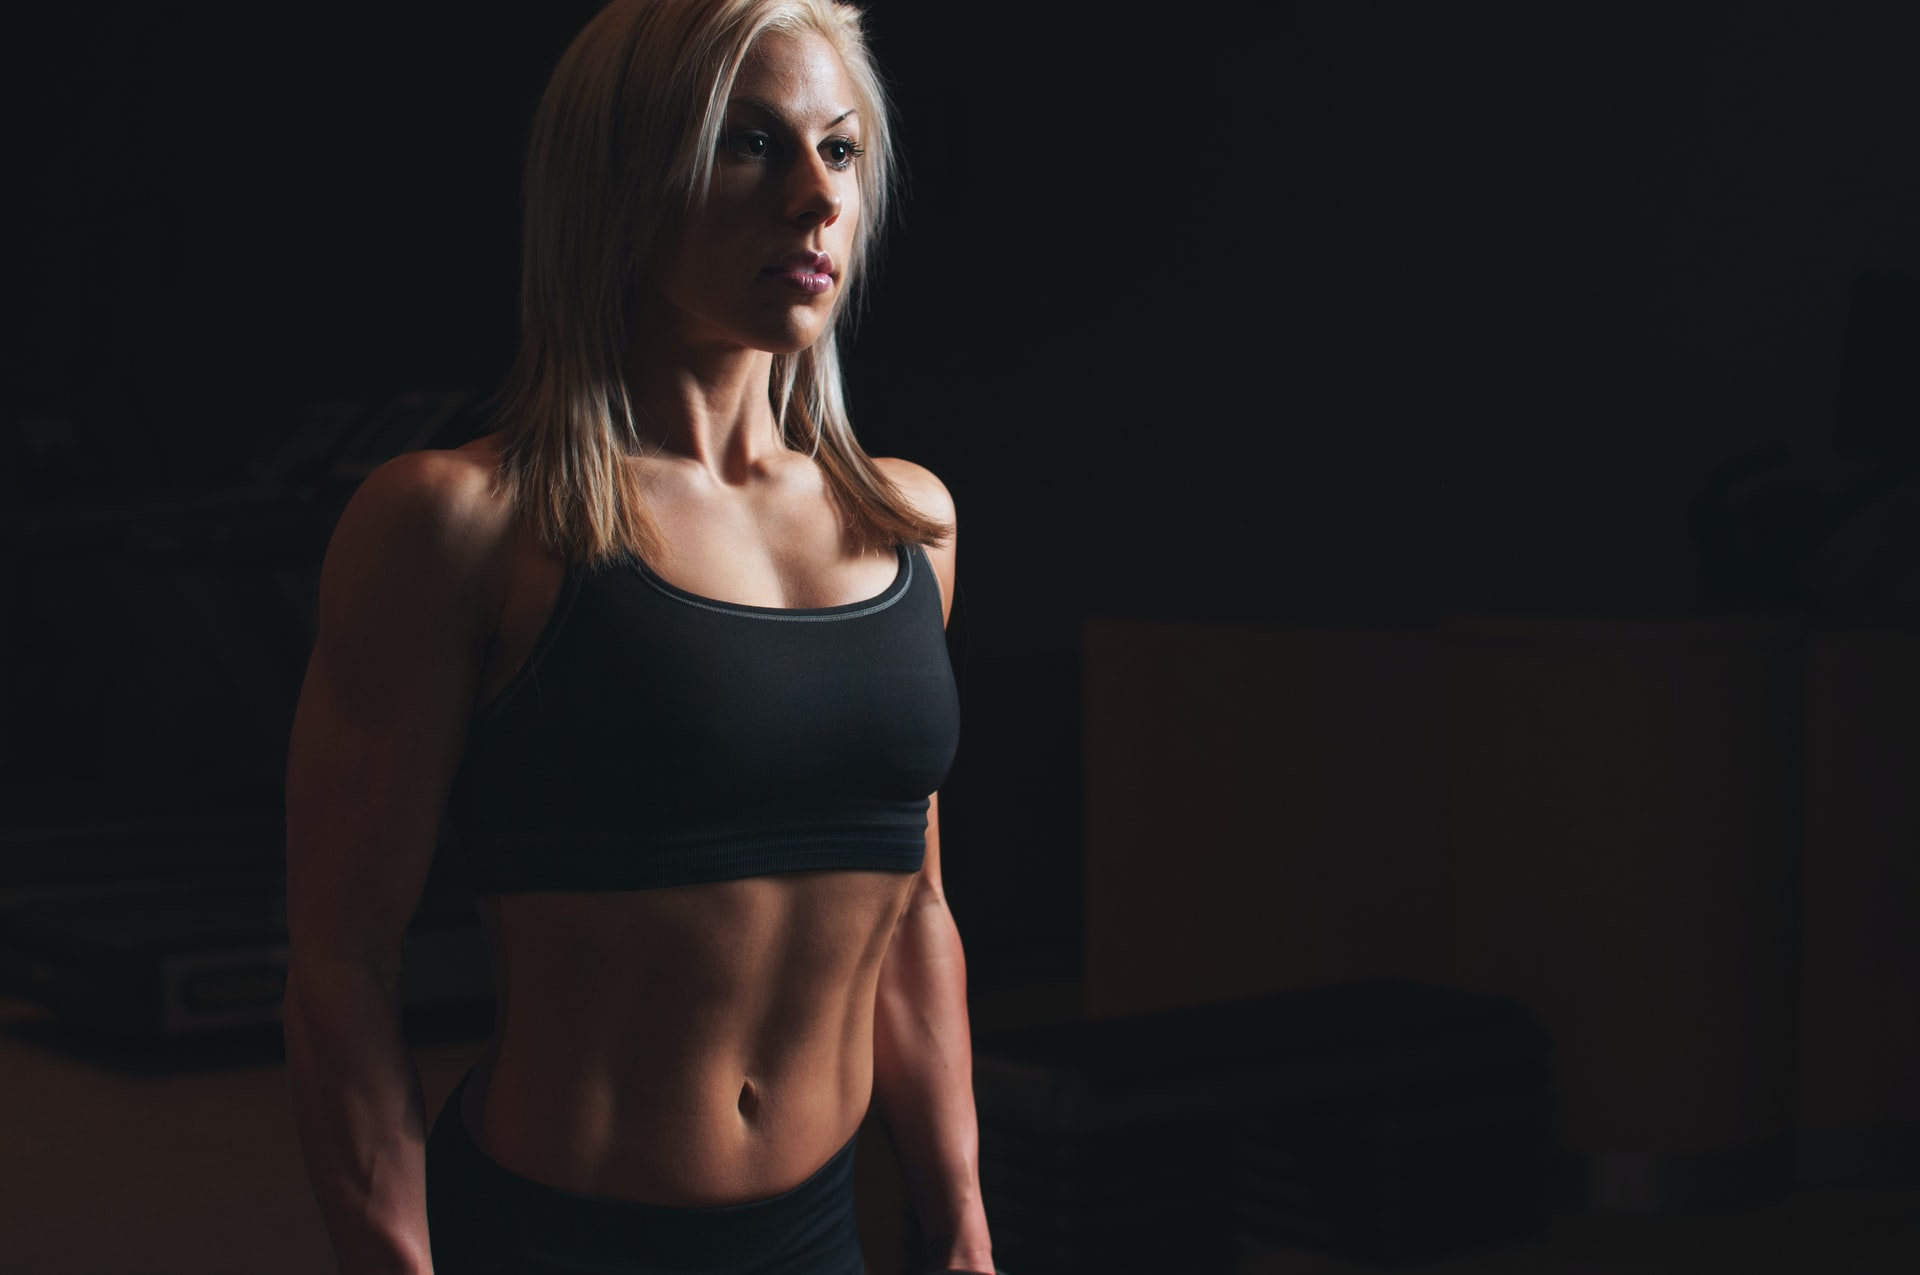 toned person facing off-camera against black background, looking ready for fitness, coolsculpting